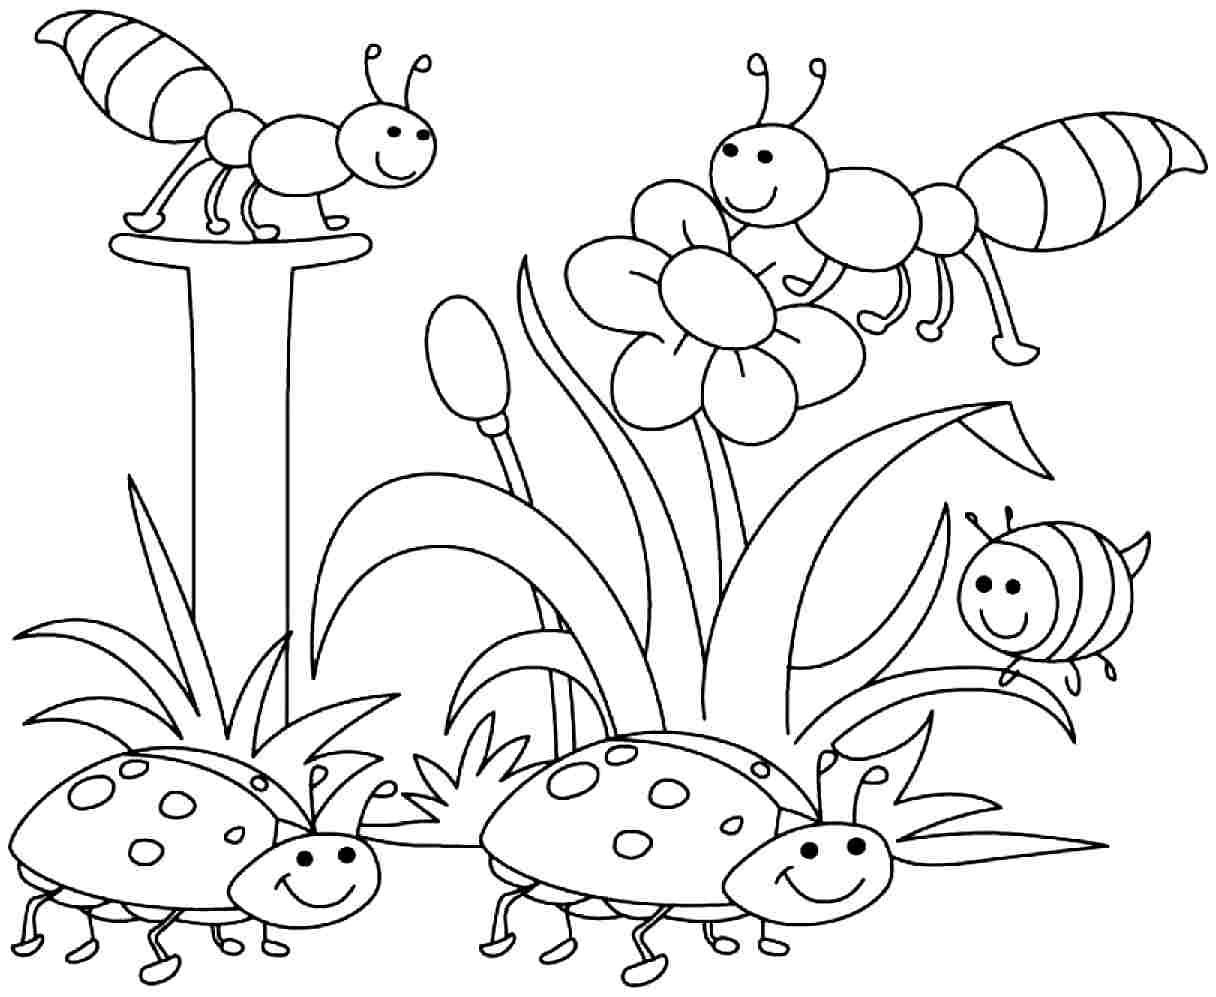 insects coloring sheets insect coloring pages best coloring pages for kids sheets insects coloring